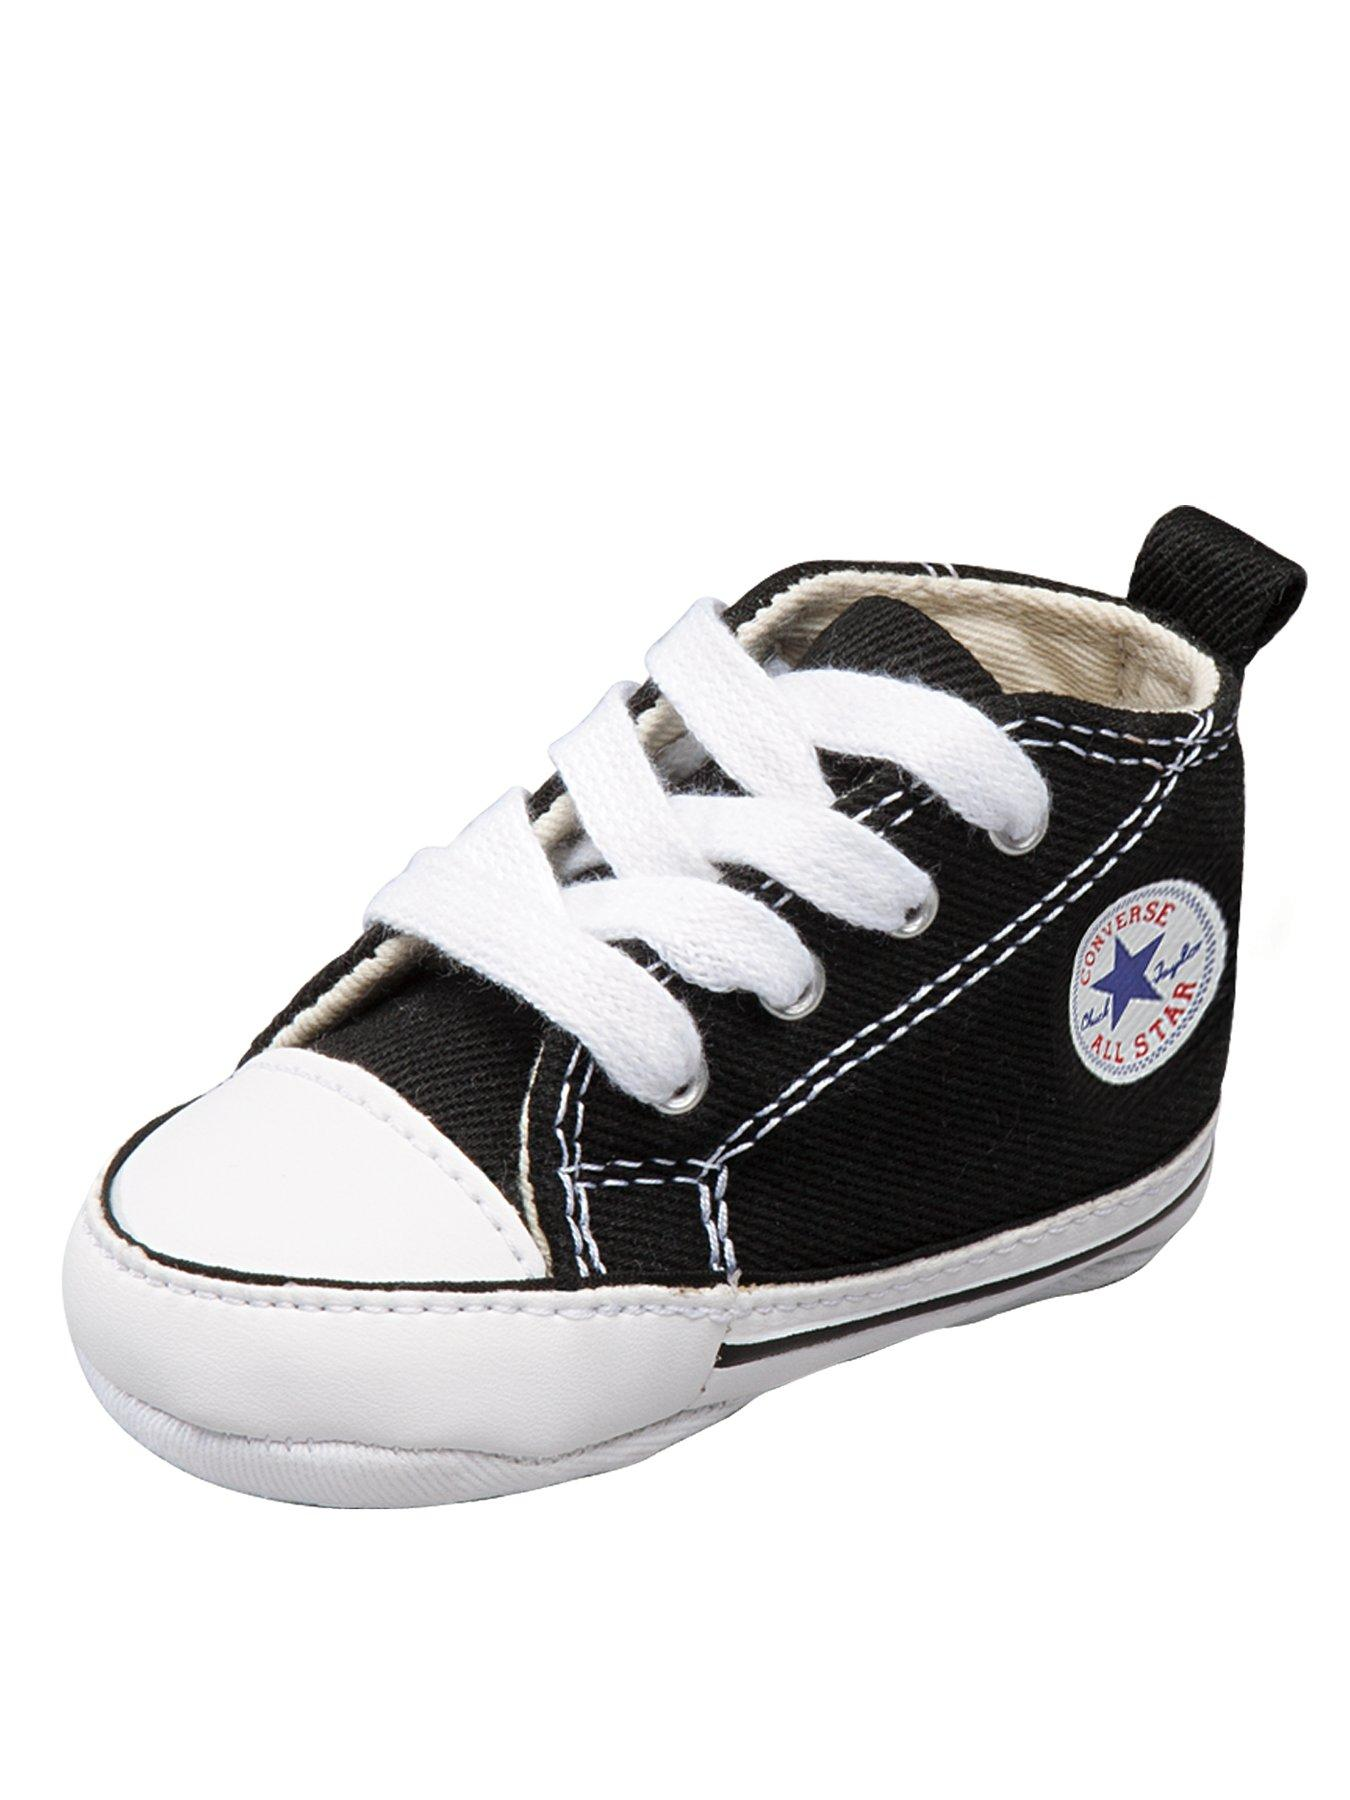 Converse First Star Crib Shoes Black - Black, Black